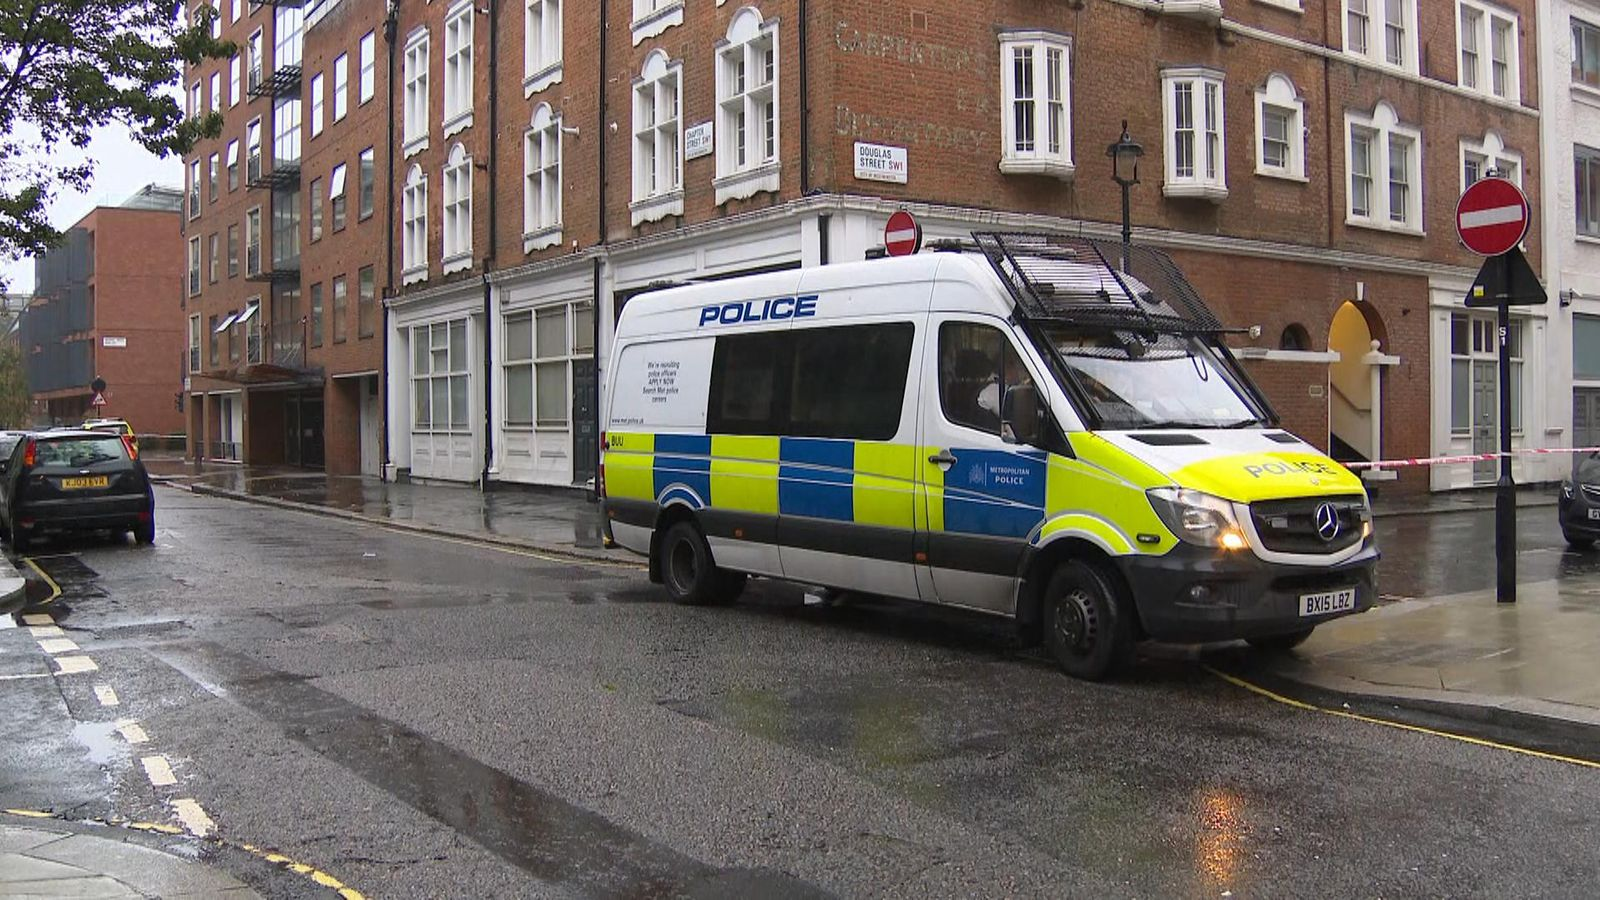 Police officer stabbed as she attempted to arrest two men robbing a shop